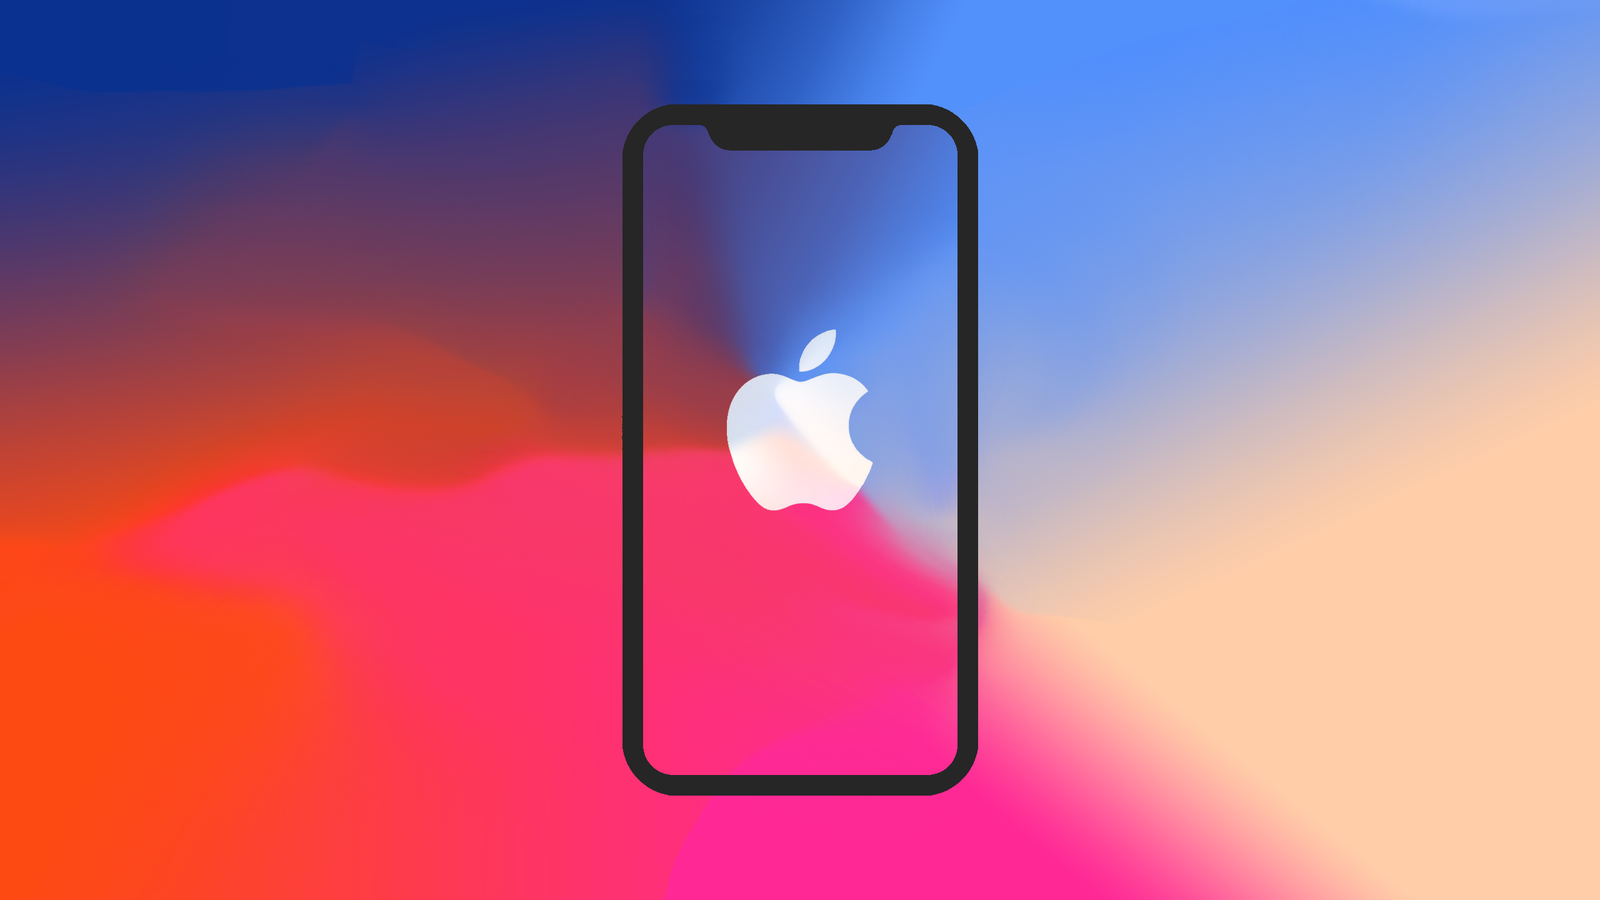 Best Home Layout Design Software Our Apple Iphone X Event Liveblog Is Right Here